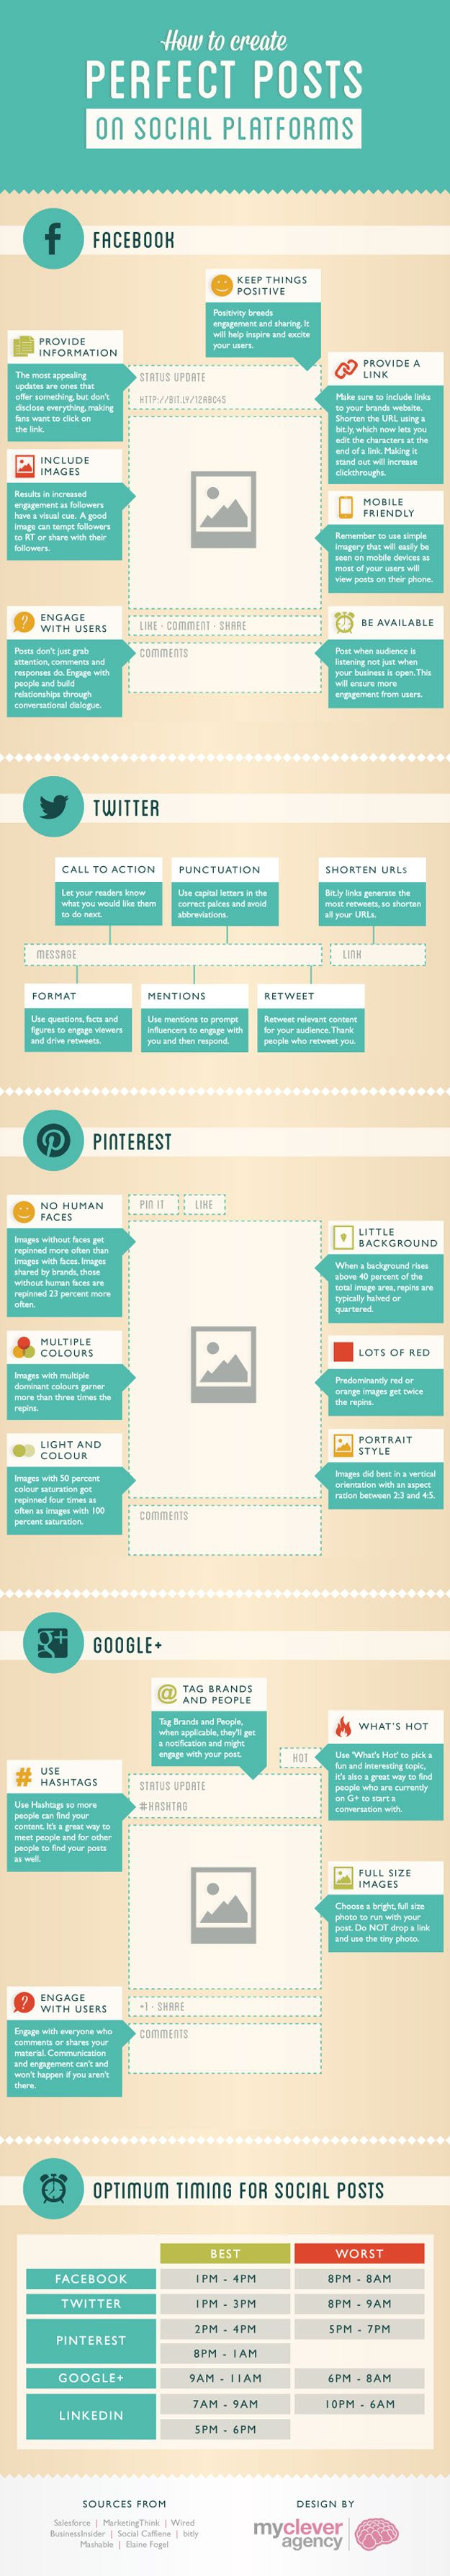 How To Create Effective Posts On The 4 Main Social Sites - #Infographic